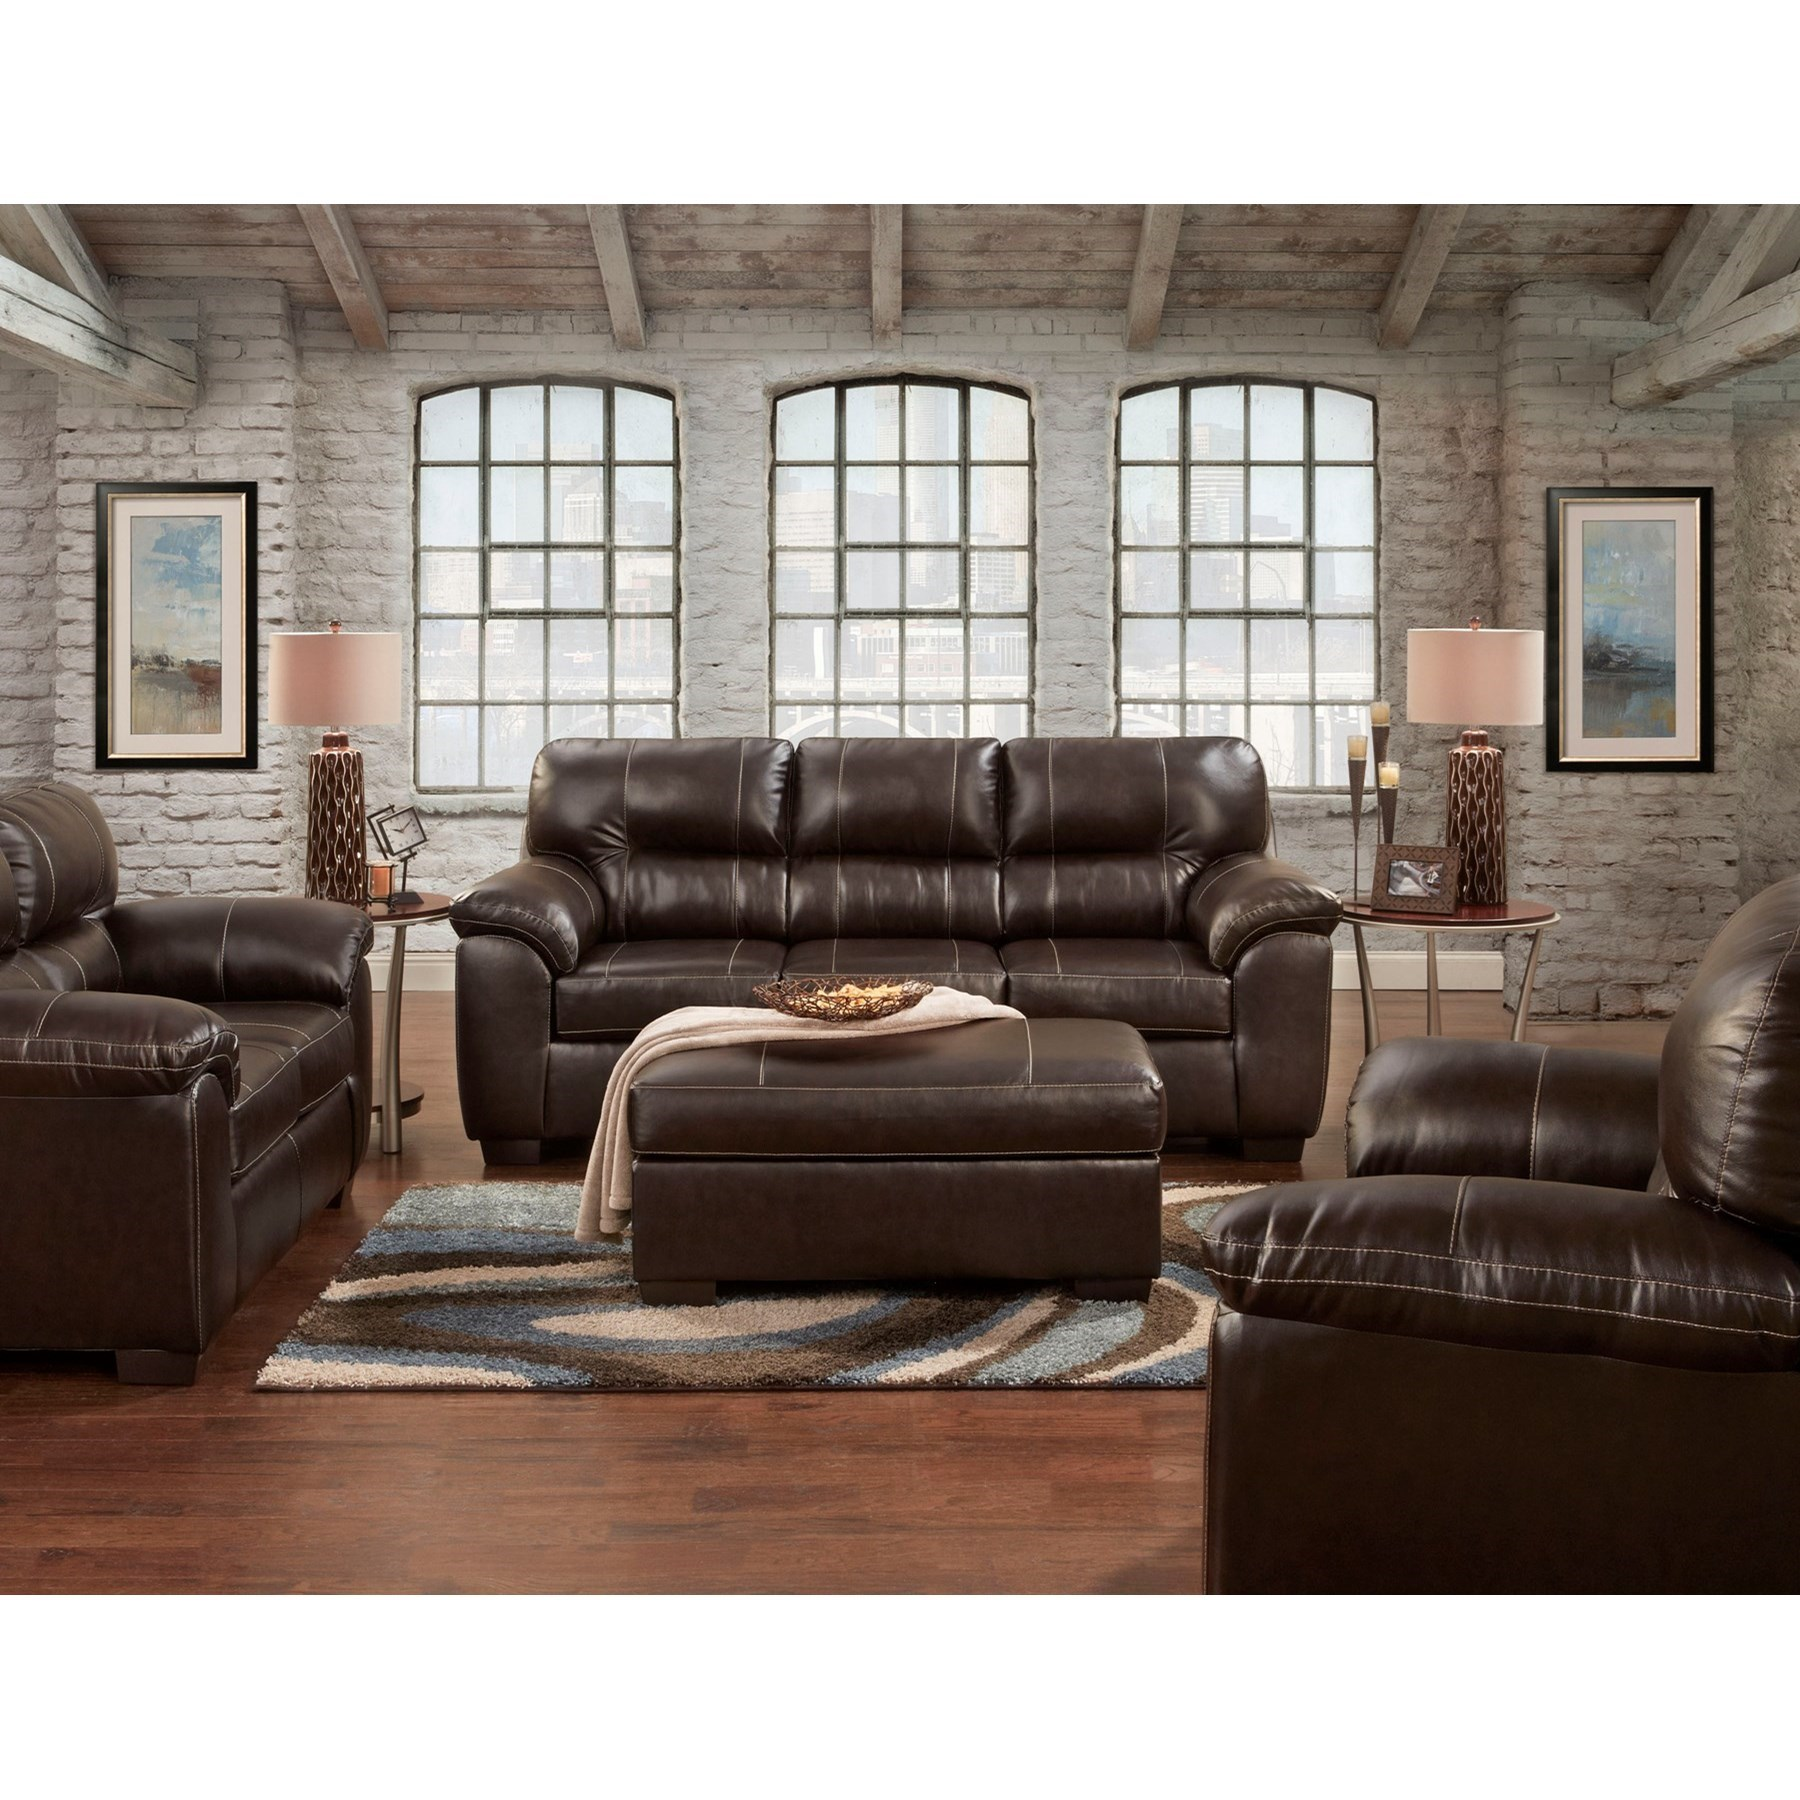 2 Piece Stationary Living Room Group